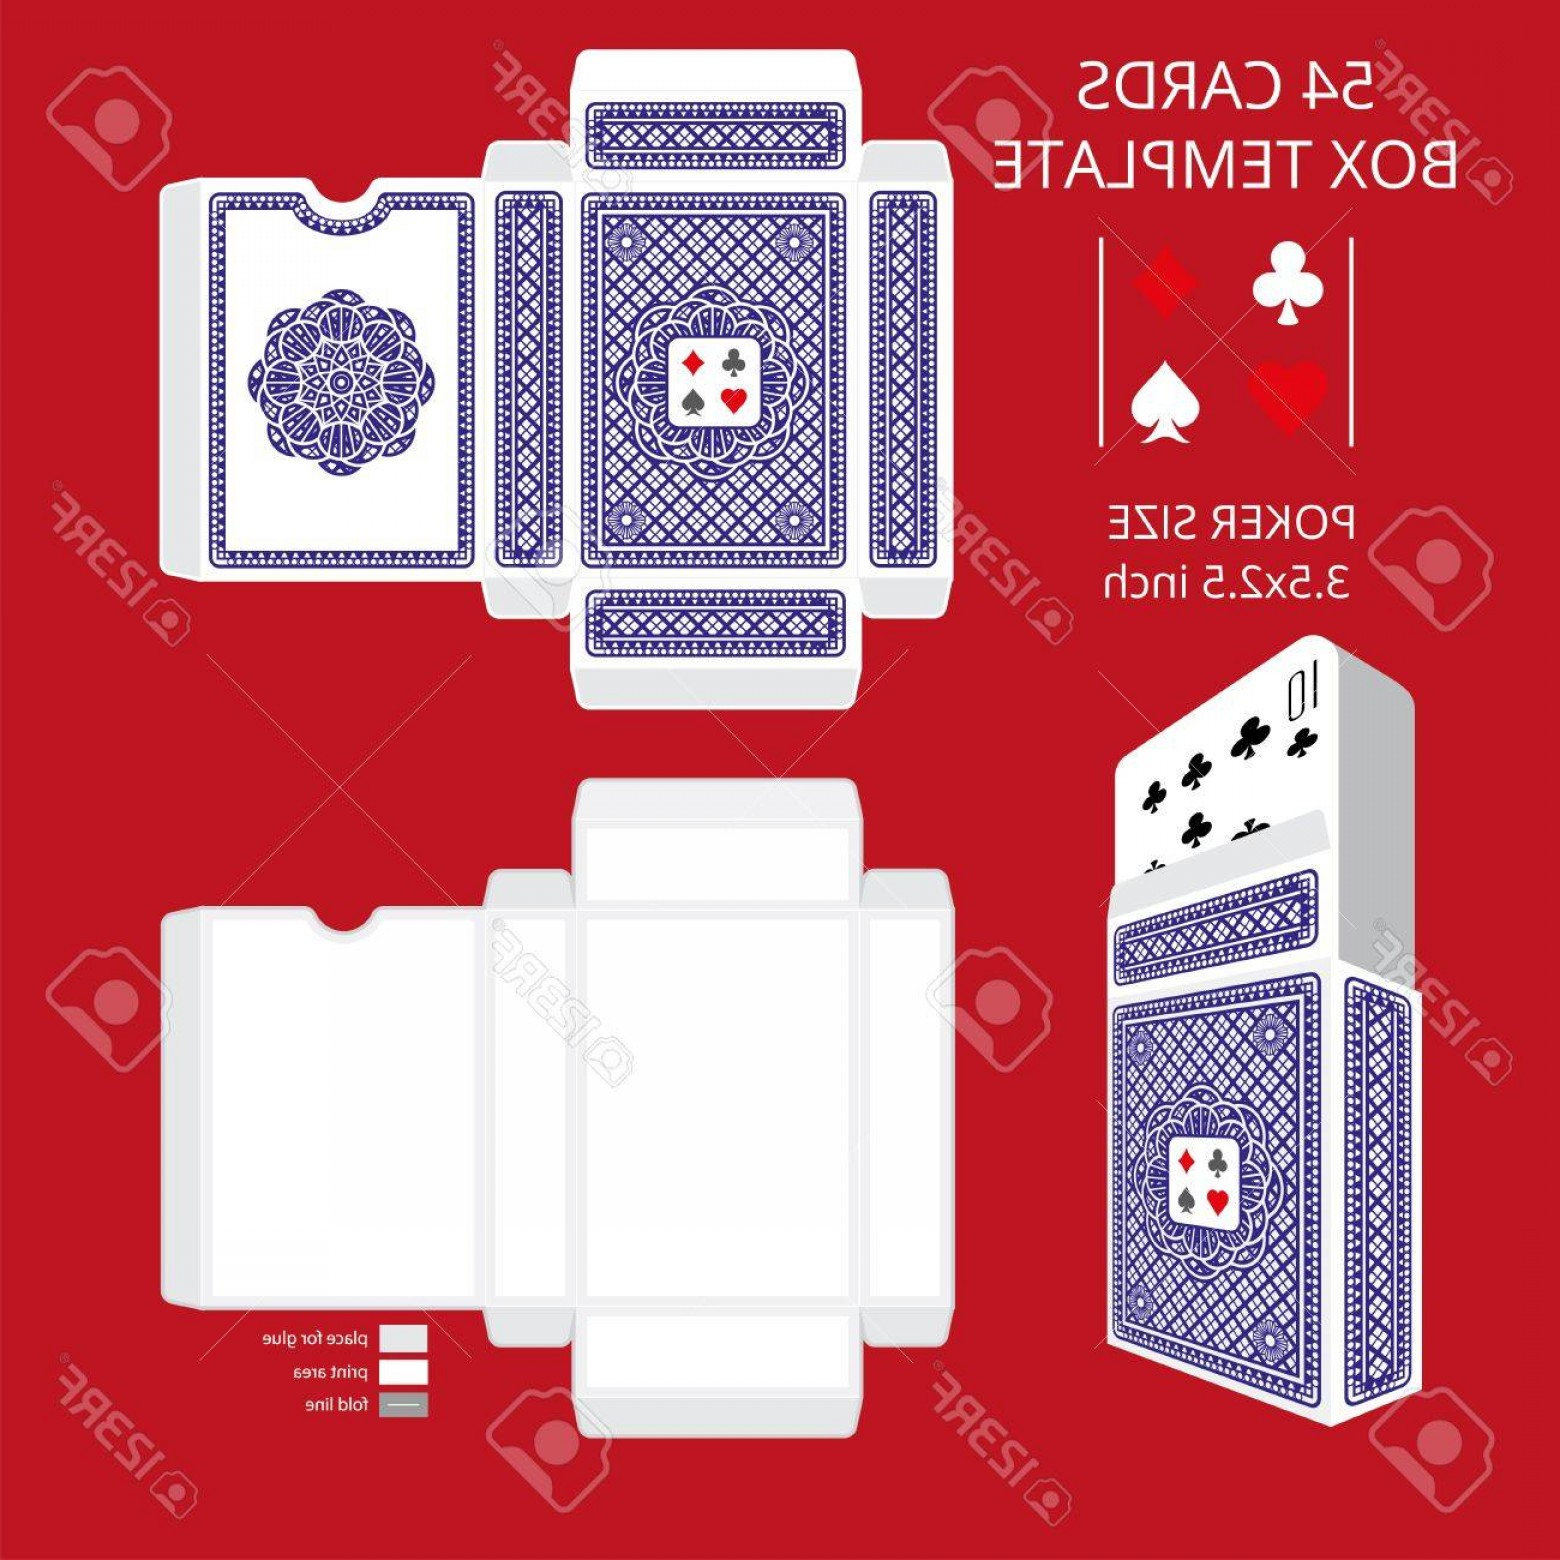 Playing Card Design Vector Illustration: Photostock Vector Poker Card Size Tuck Box Template Vector Illustration Ready Design Boxes For The Game Deck And Three